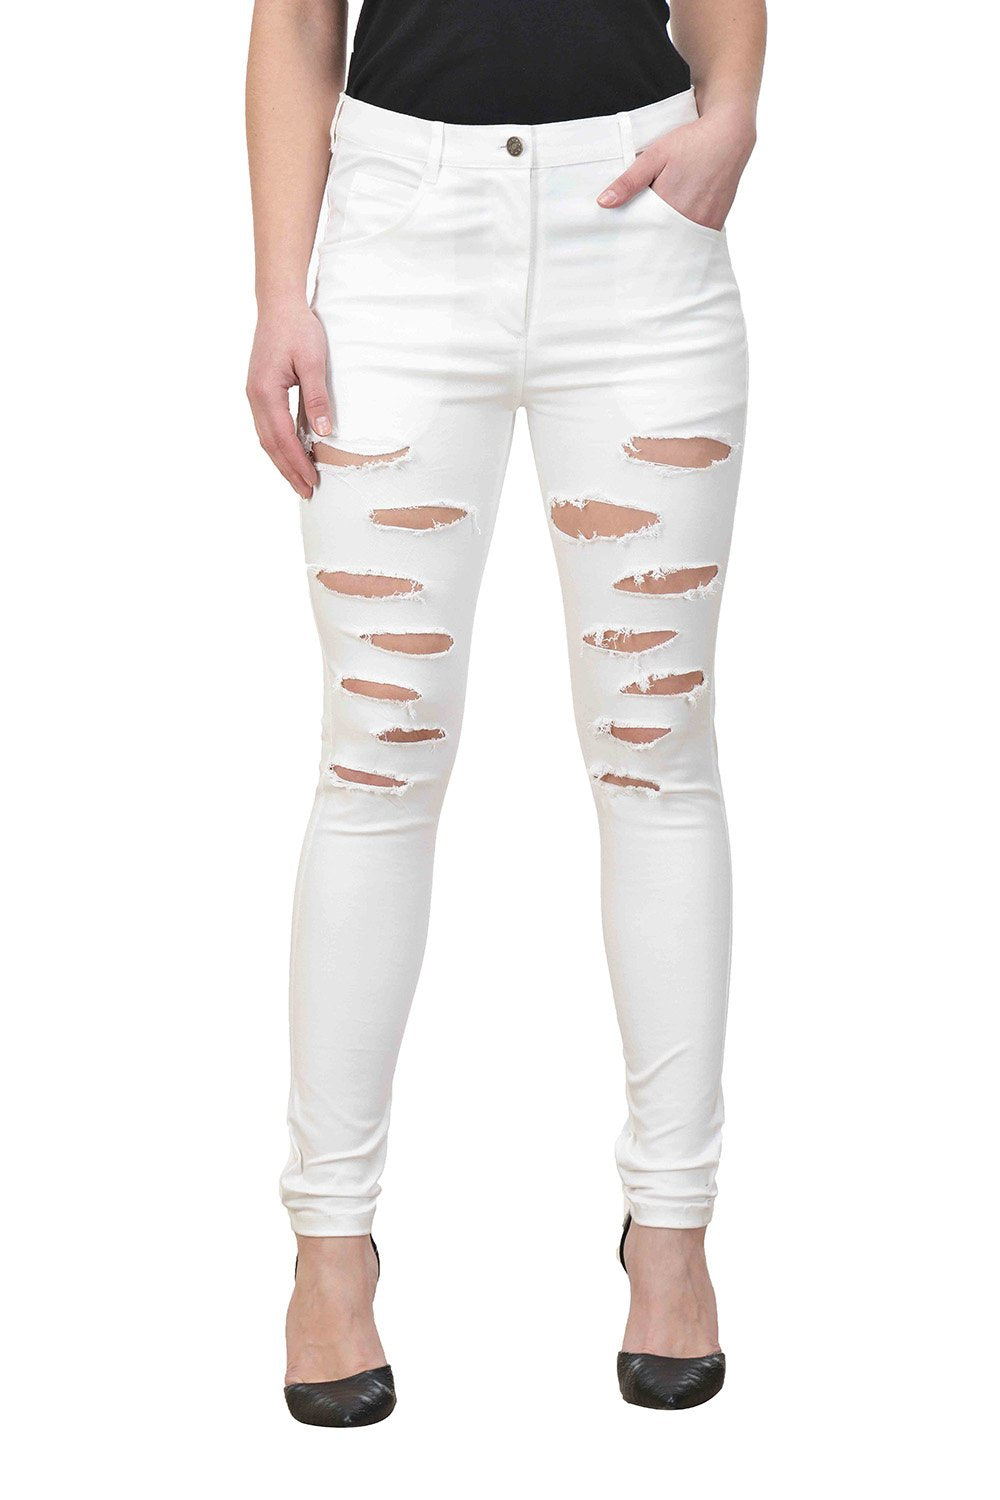 Castle White Solid Cotton Lycra Ripped Pants